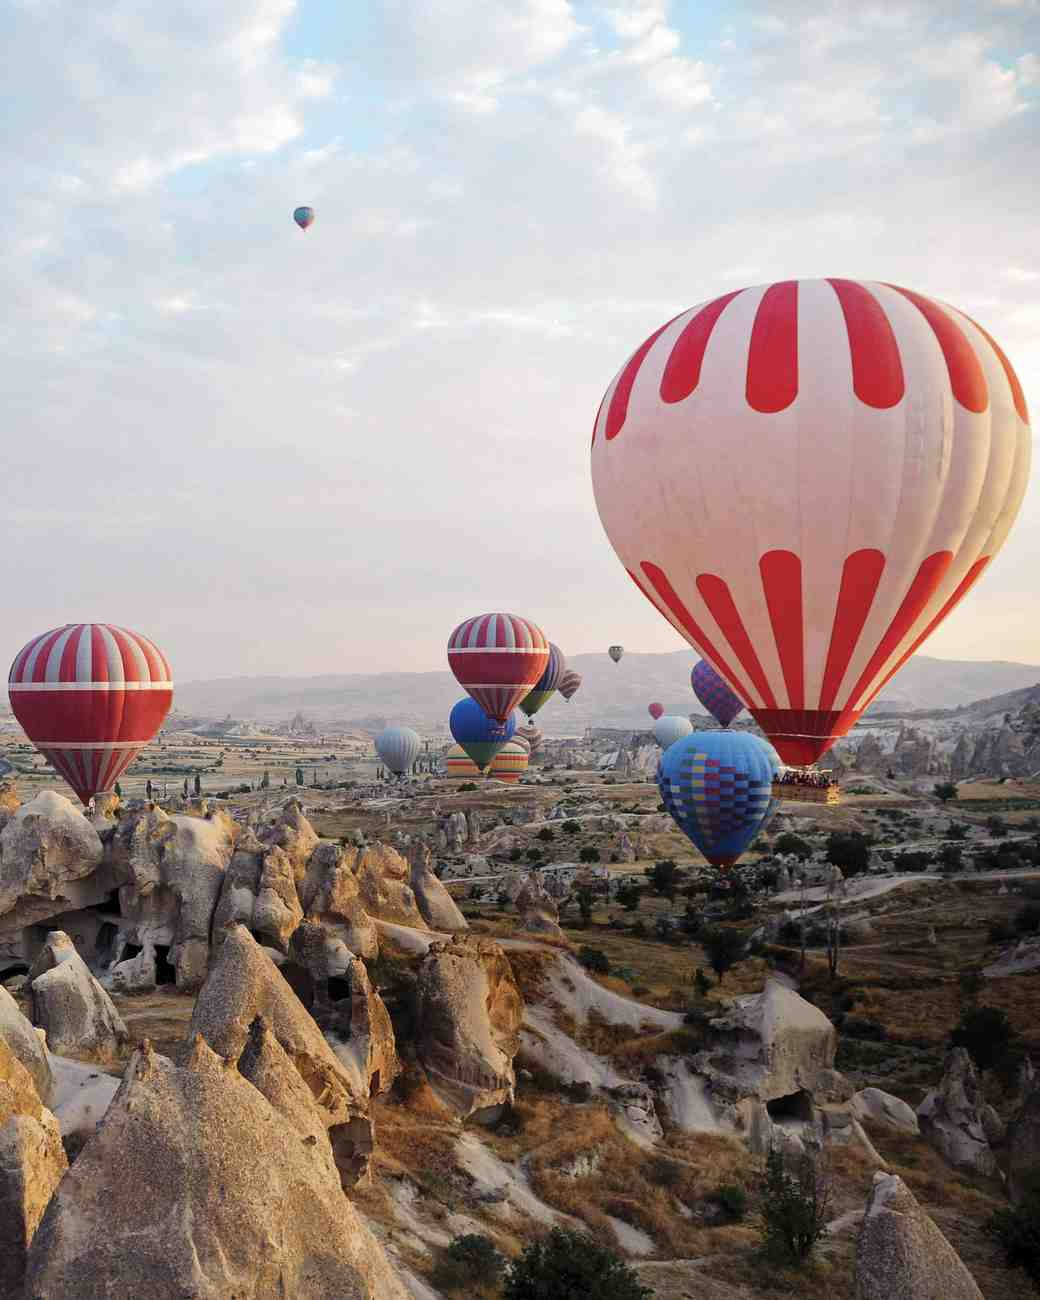 travel-honeymoon-diaries-hot-air-balloons-over-turkey-112965.jpg